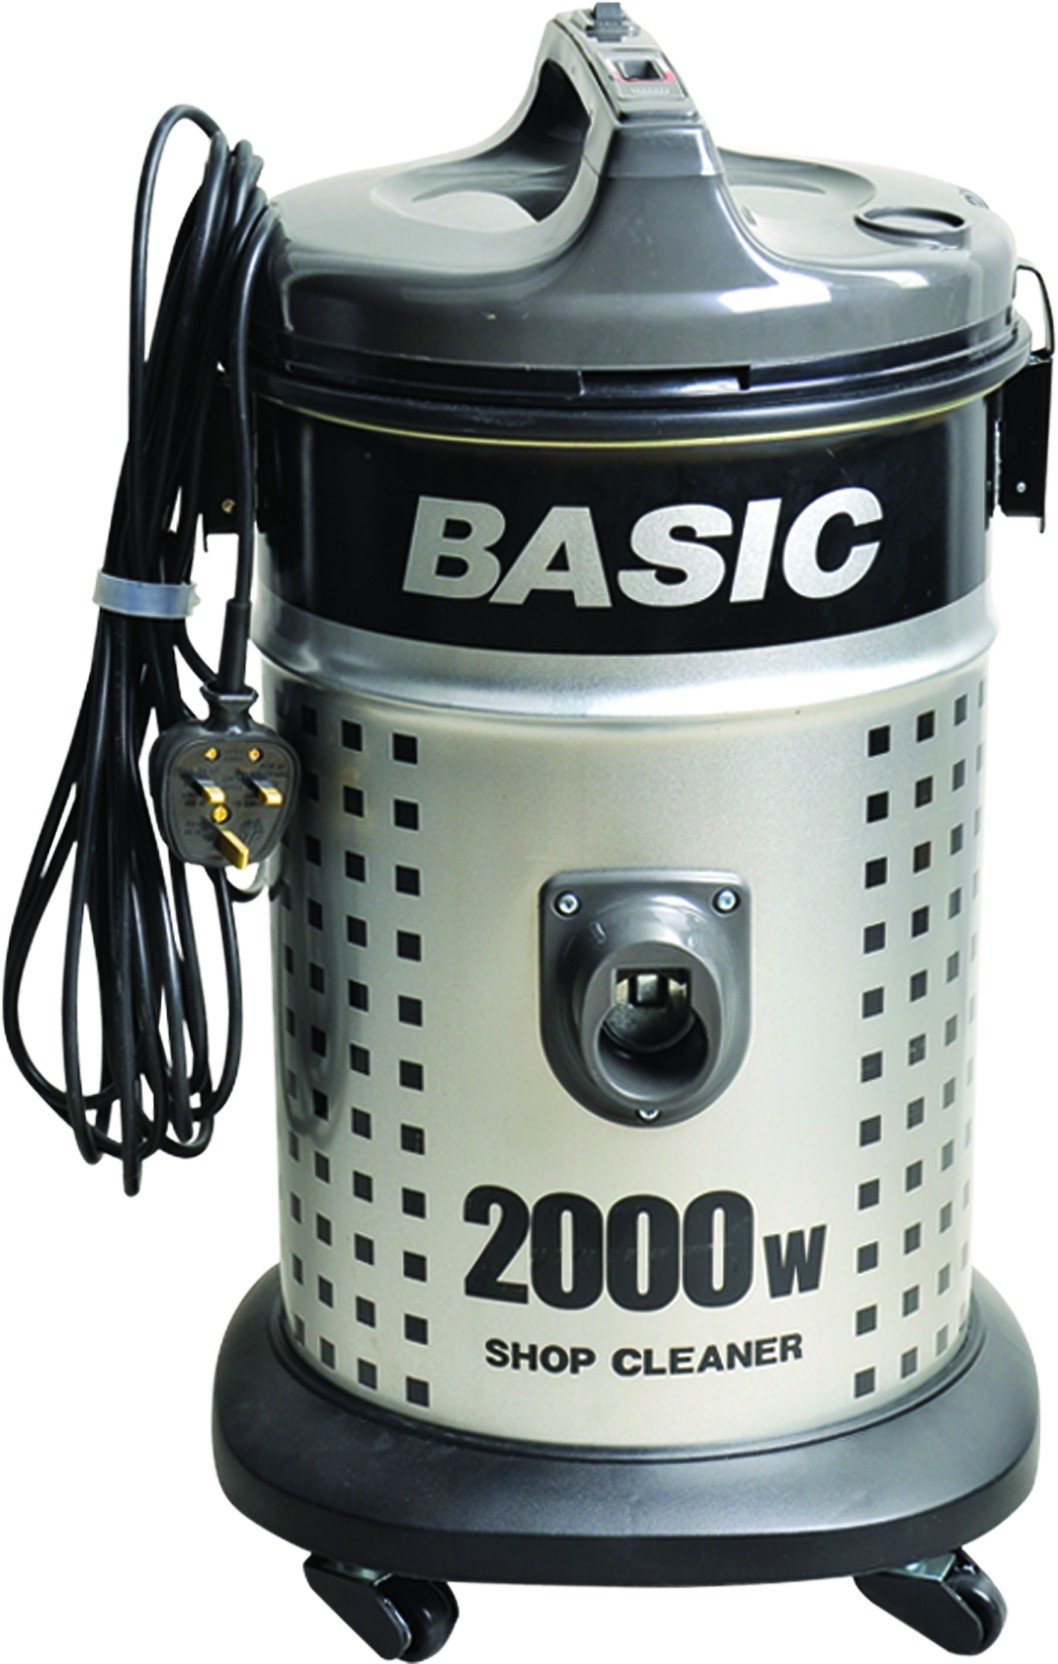 Basic BSC-2000 Vaccum Cleaner with Dust indicator & 15 Litre dust capacity